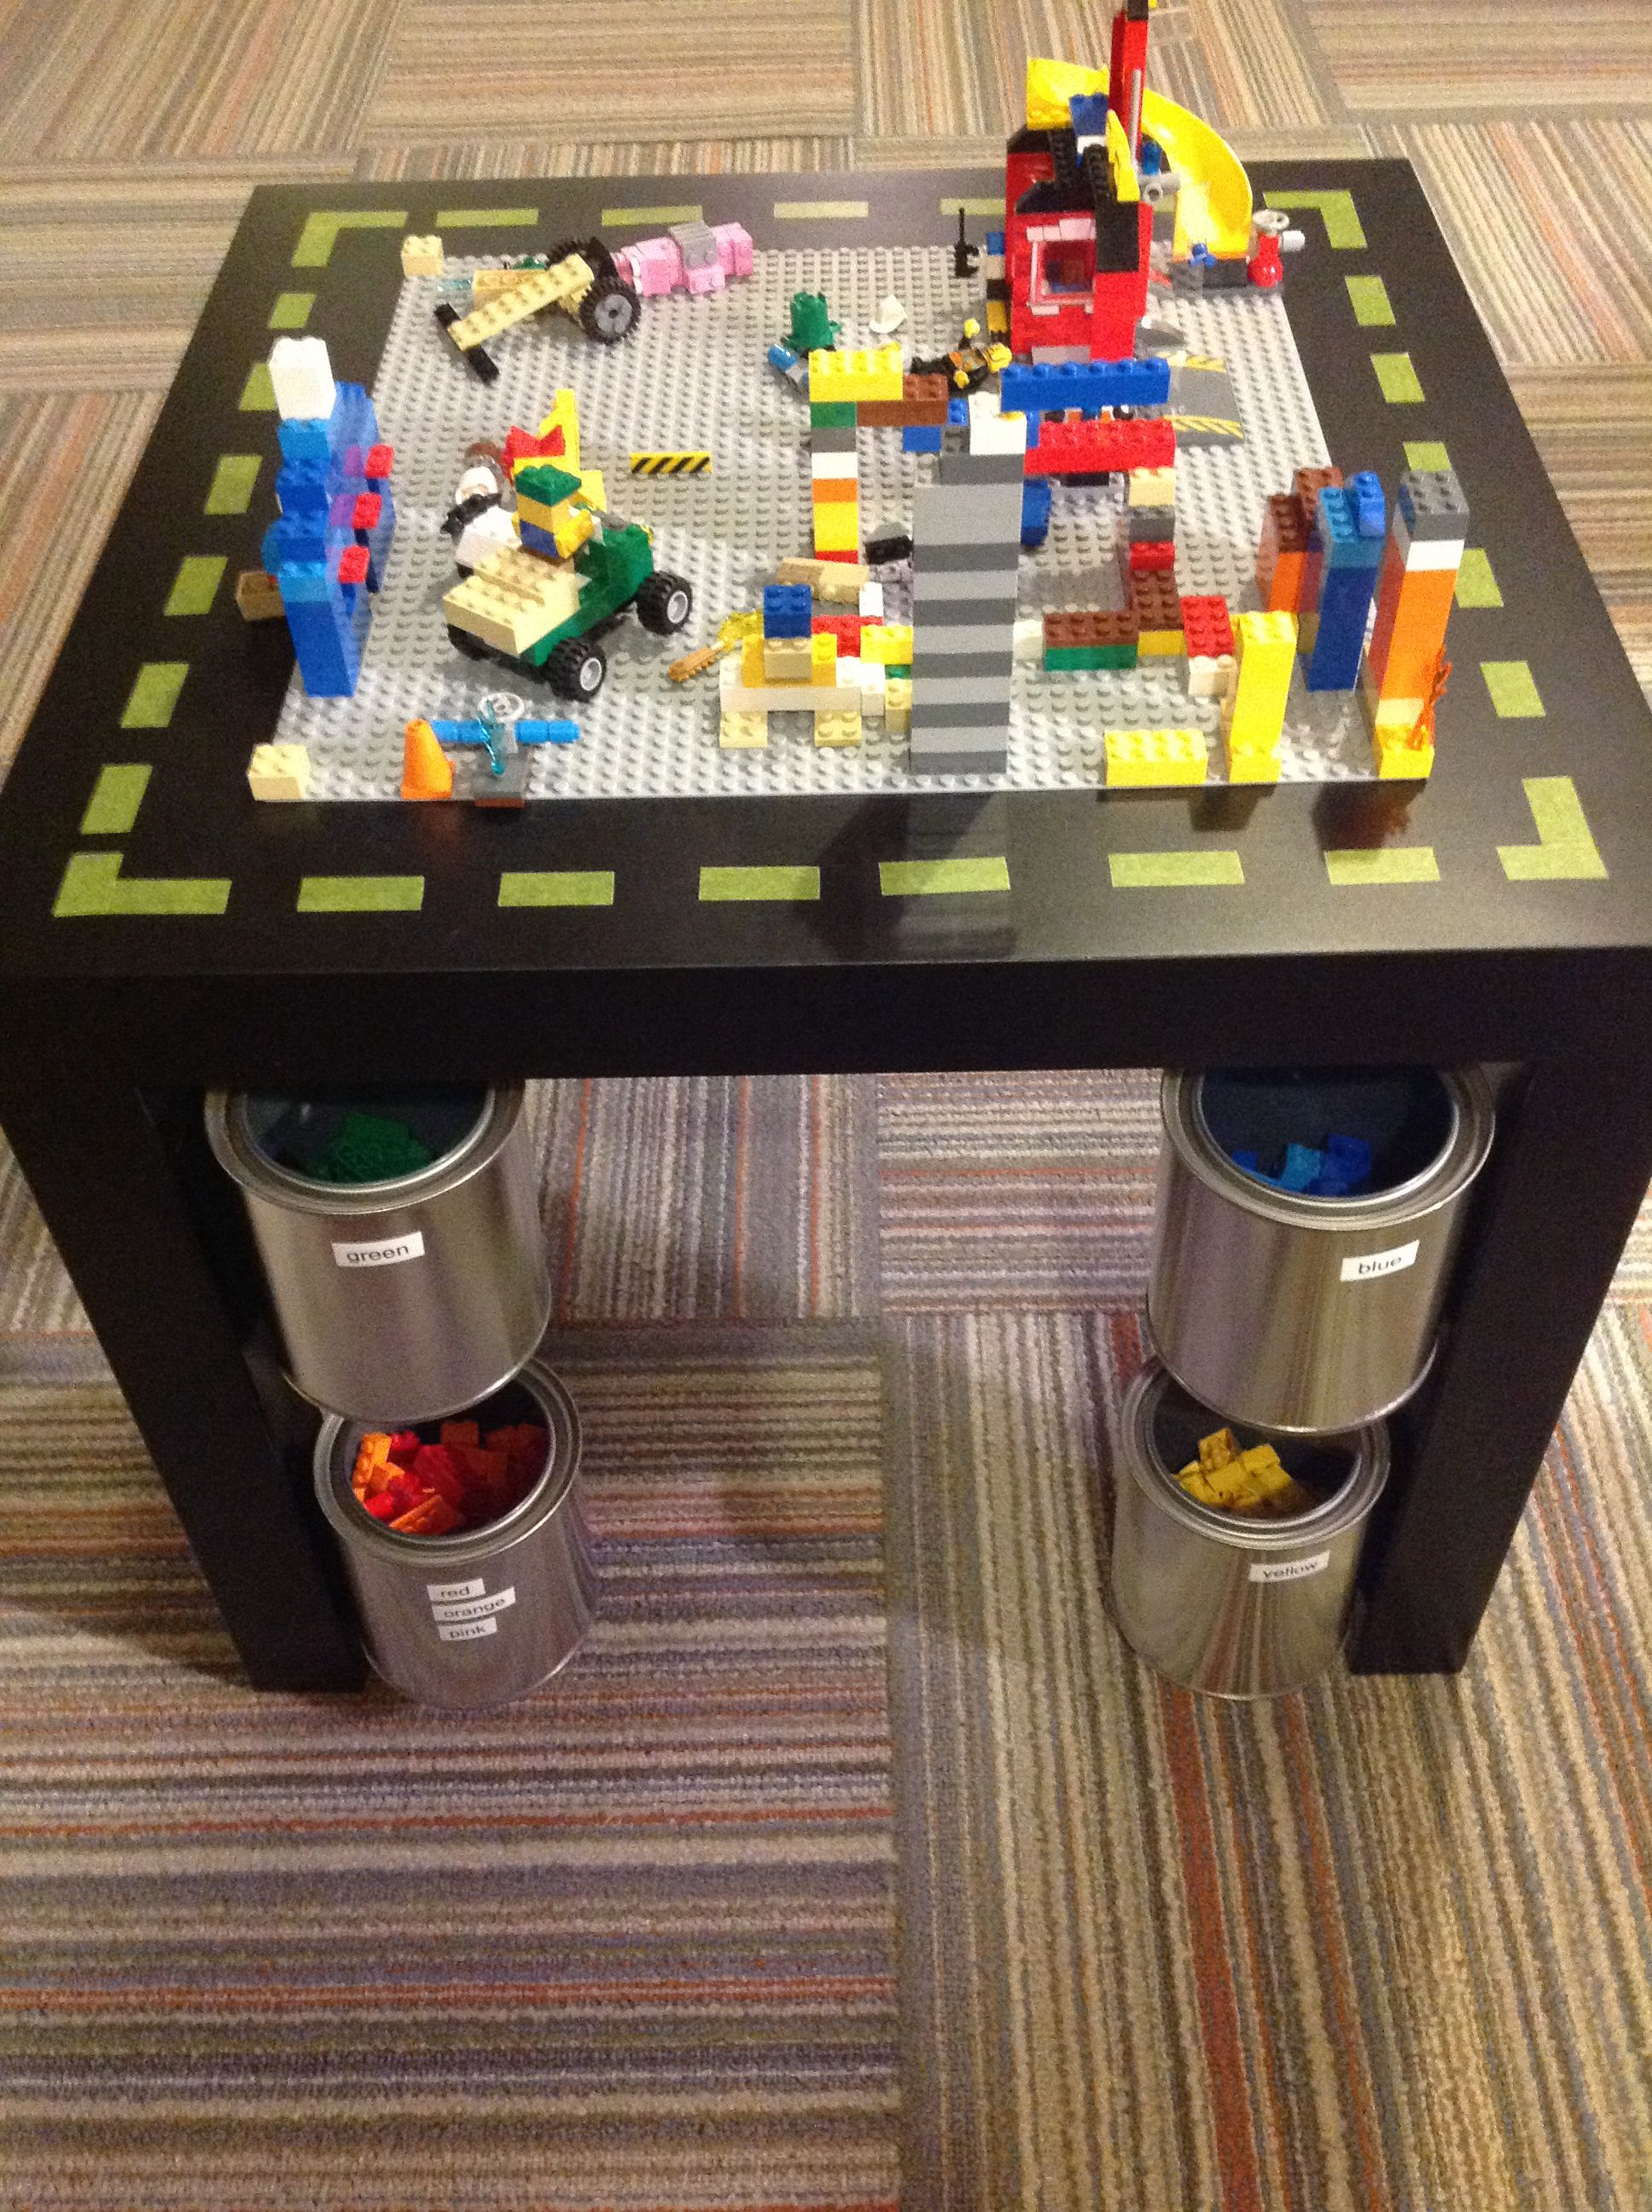 Diy Lego Table Ikea Lack Side Table For 4 99 Large Lego Plate